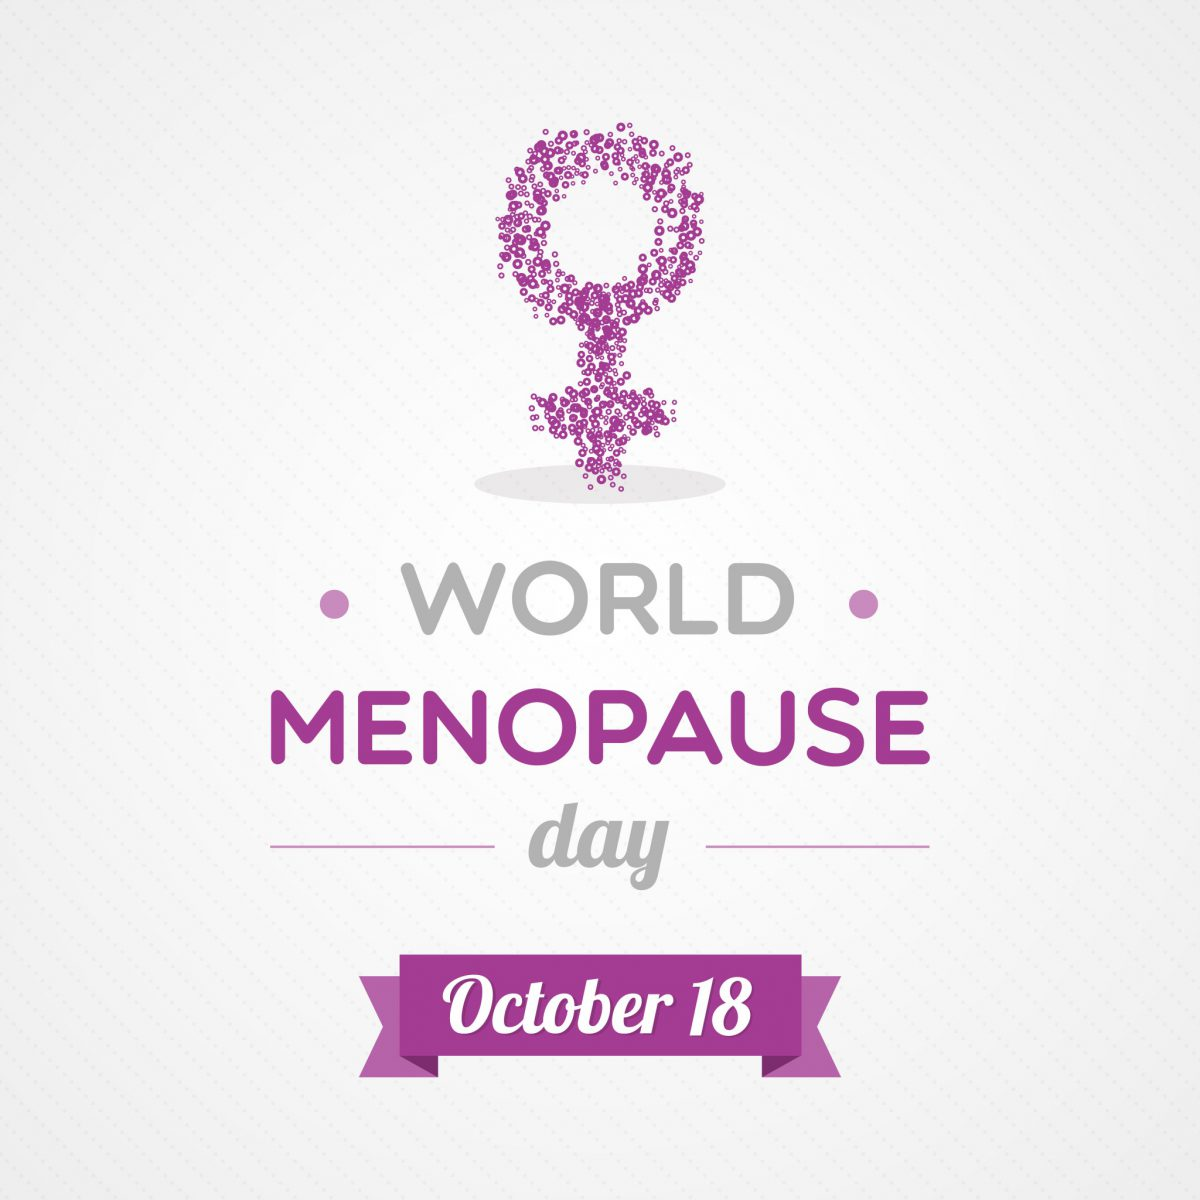 World menopause day. How can you make a difference?